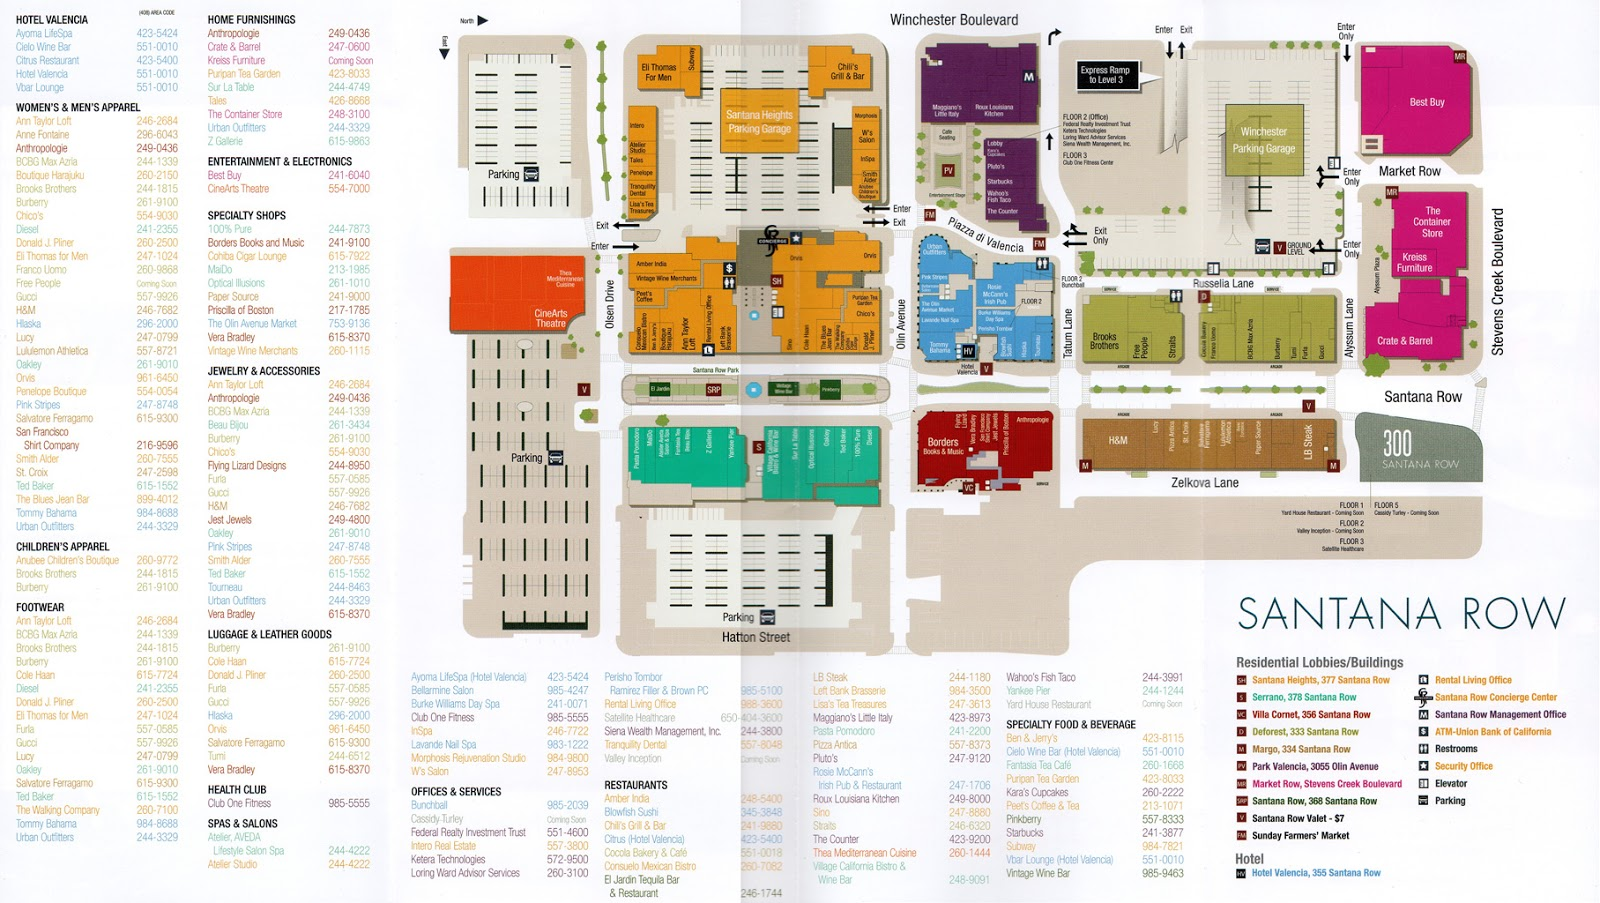 BIGMallrat Shopping Malls In The San Francisco Bay Area And - San jose great mall map